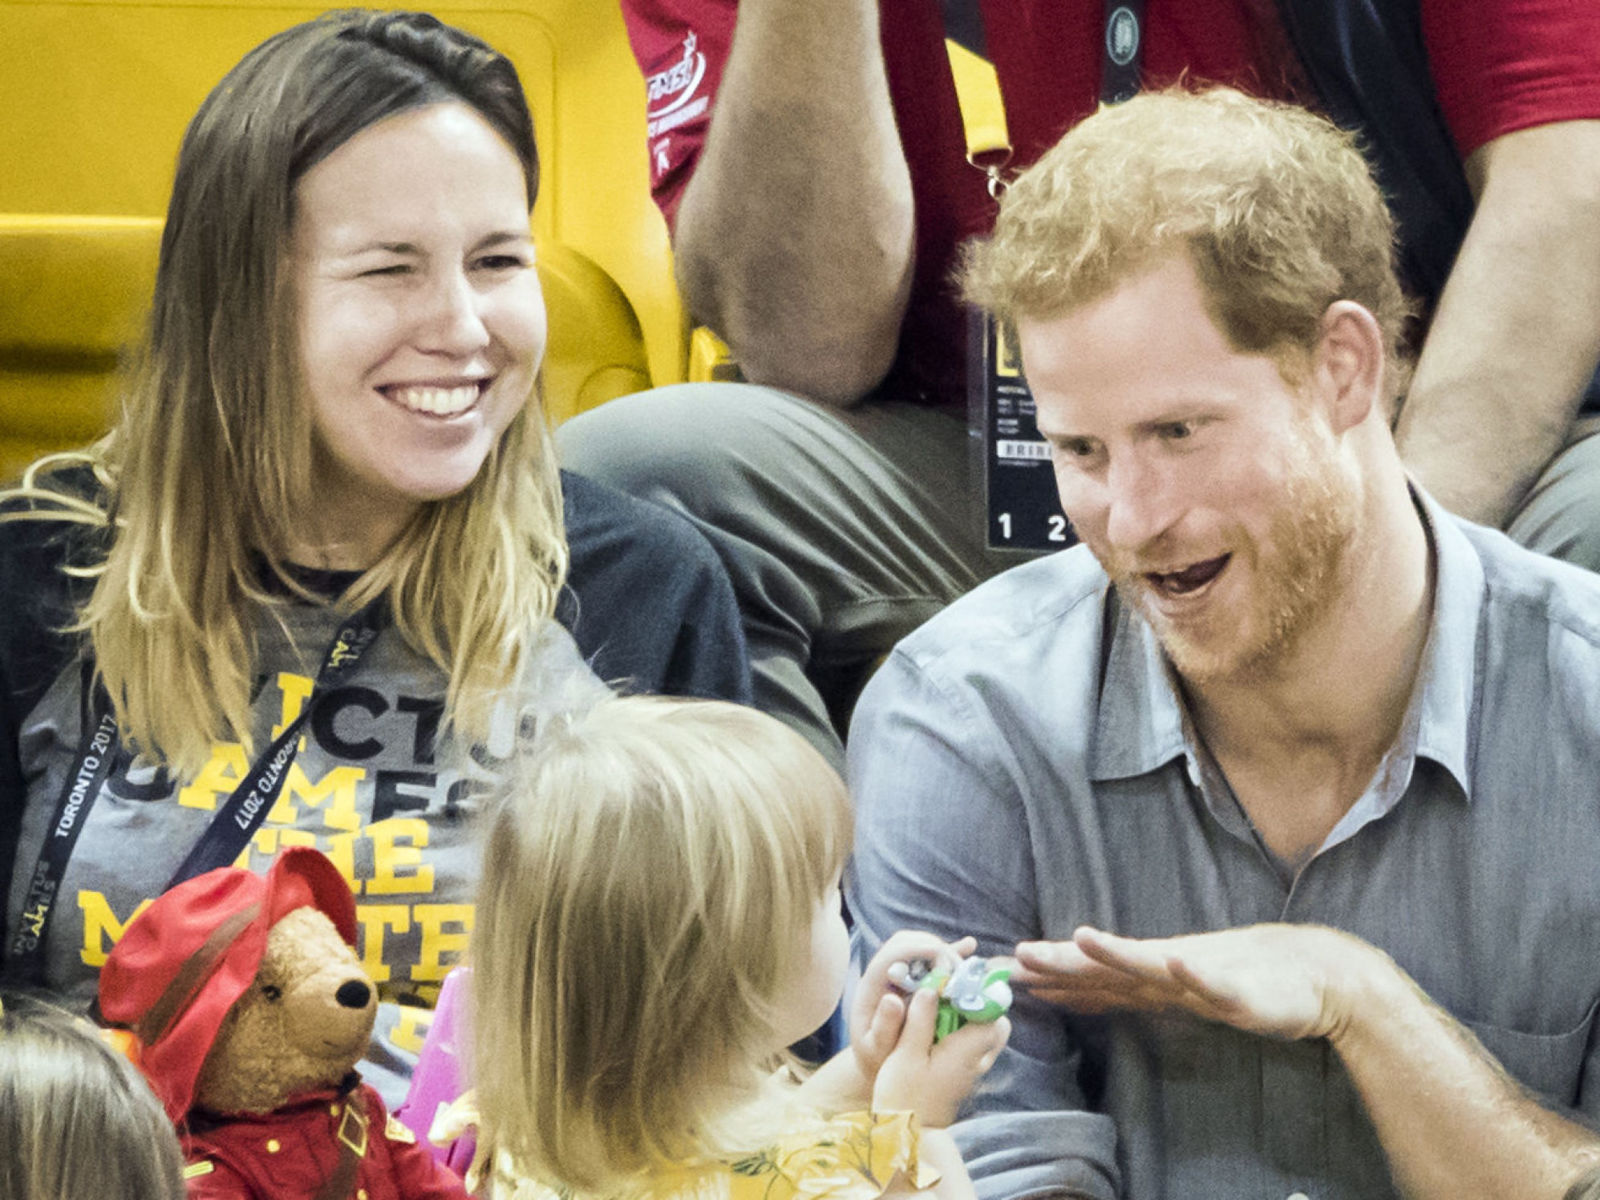 Prince Harry made a new friend at the Invictus Games last night but it appeared two-year-old Emily Henson was only after one thing: his popcorn. Prince Harry has been making many appearances at the Invictus Games this week, including one with his girlfriend Meghan Markle. This was their first public appearance together and has resulted in many engagement rumors.